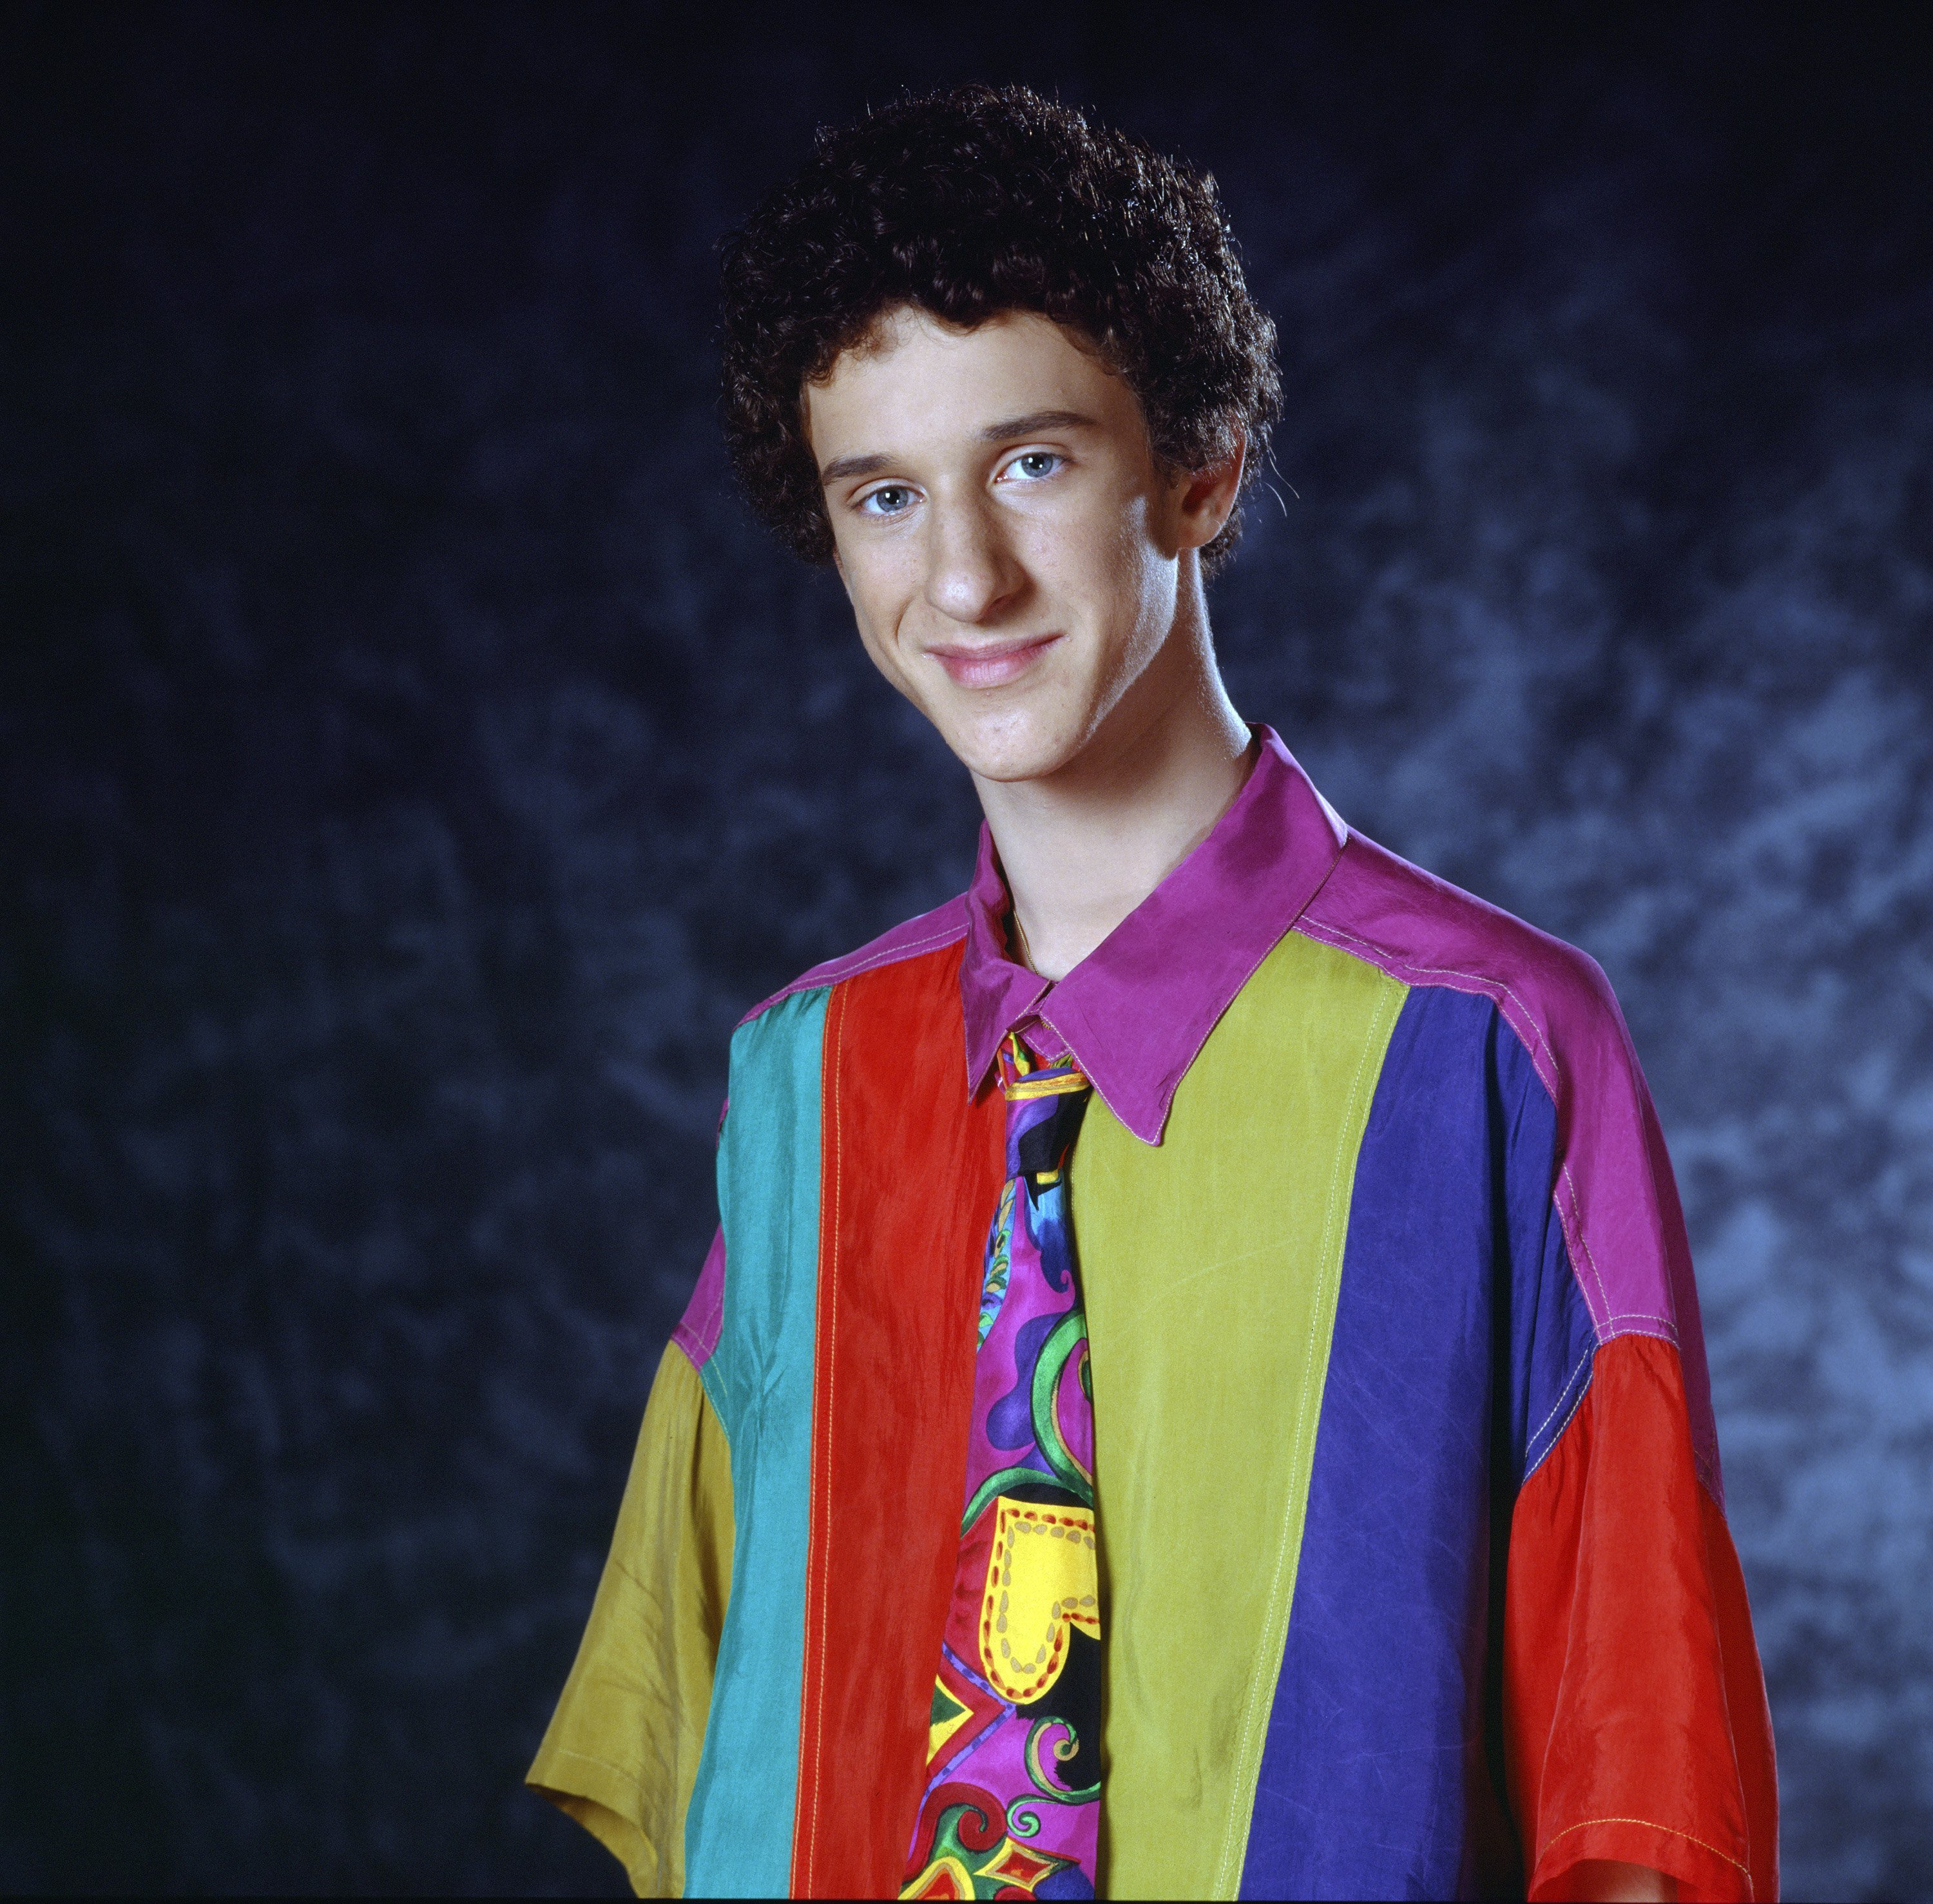 """Dustin Diamond as Screech Powers on season 3 of """"Saved by the Bell""""   Photo by: Chris Haston/NBCU Photo Bank/Getty Images"""